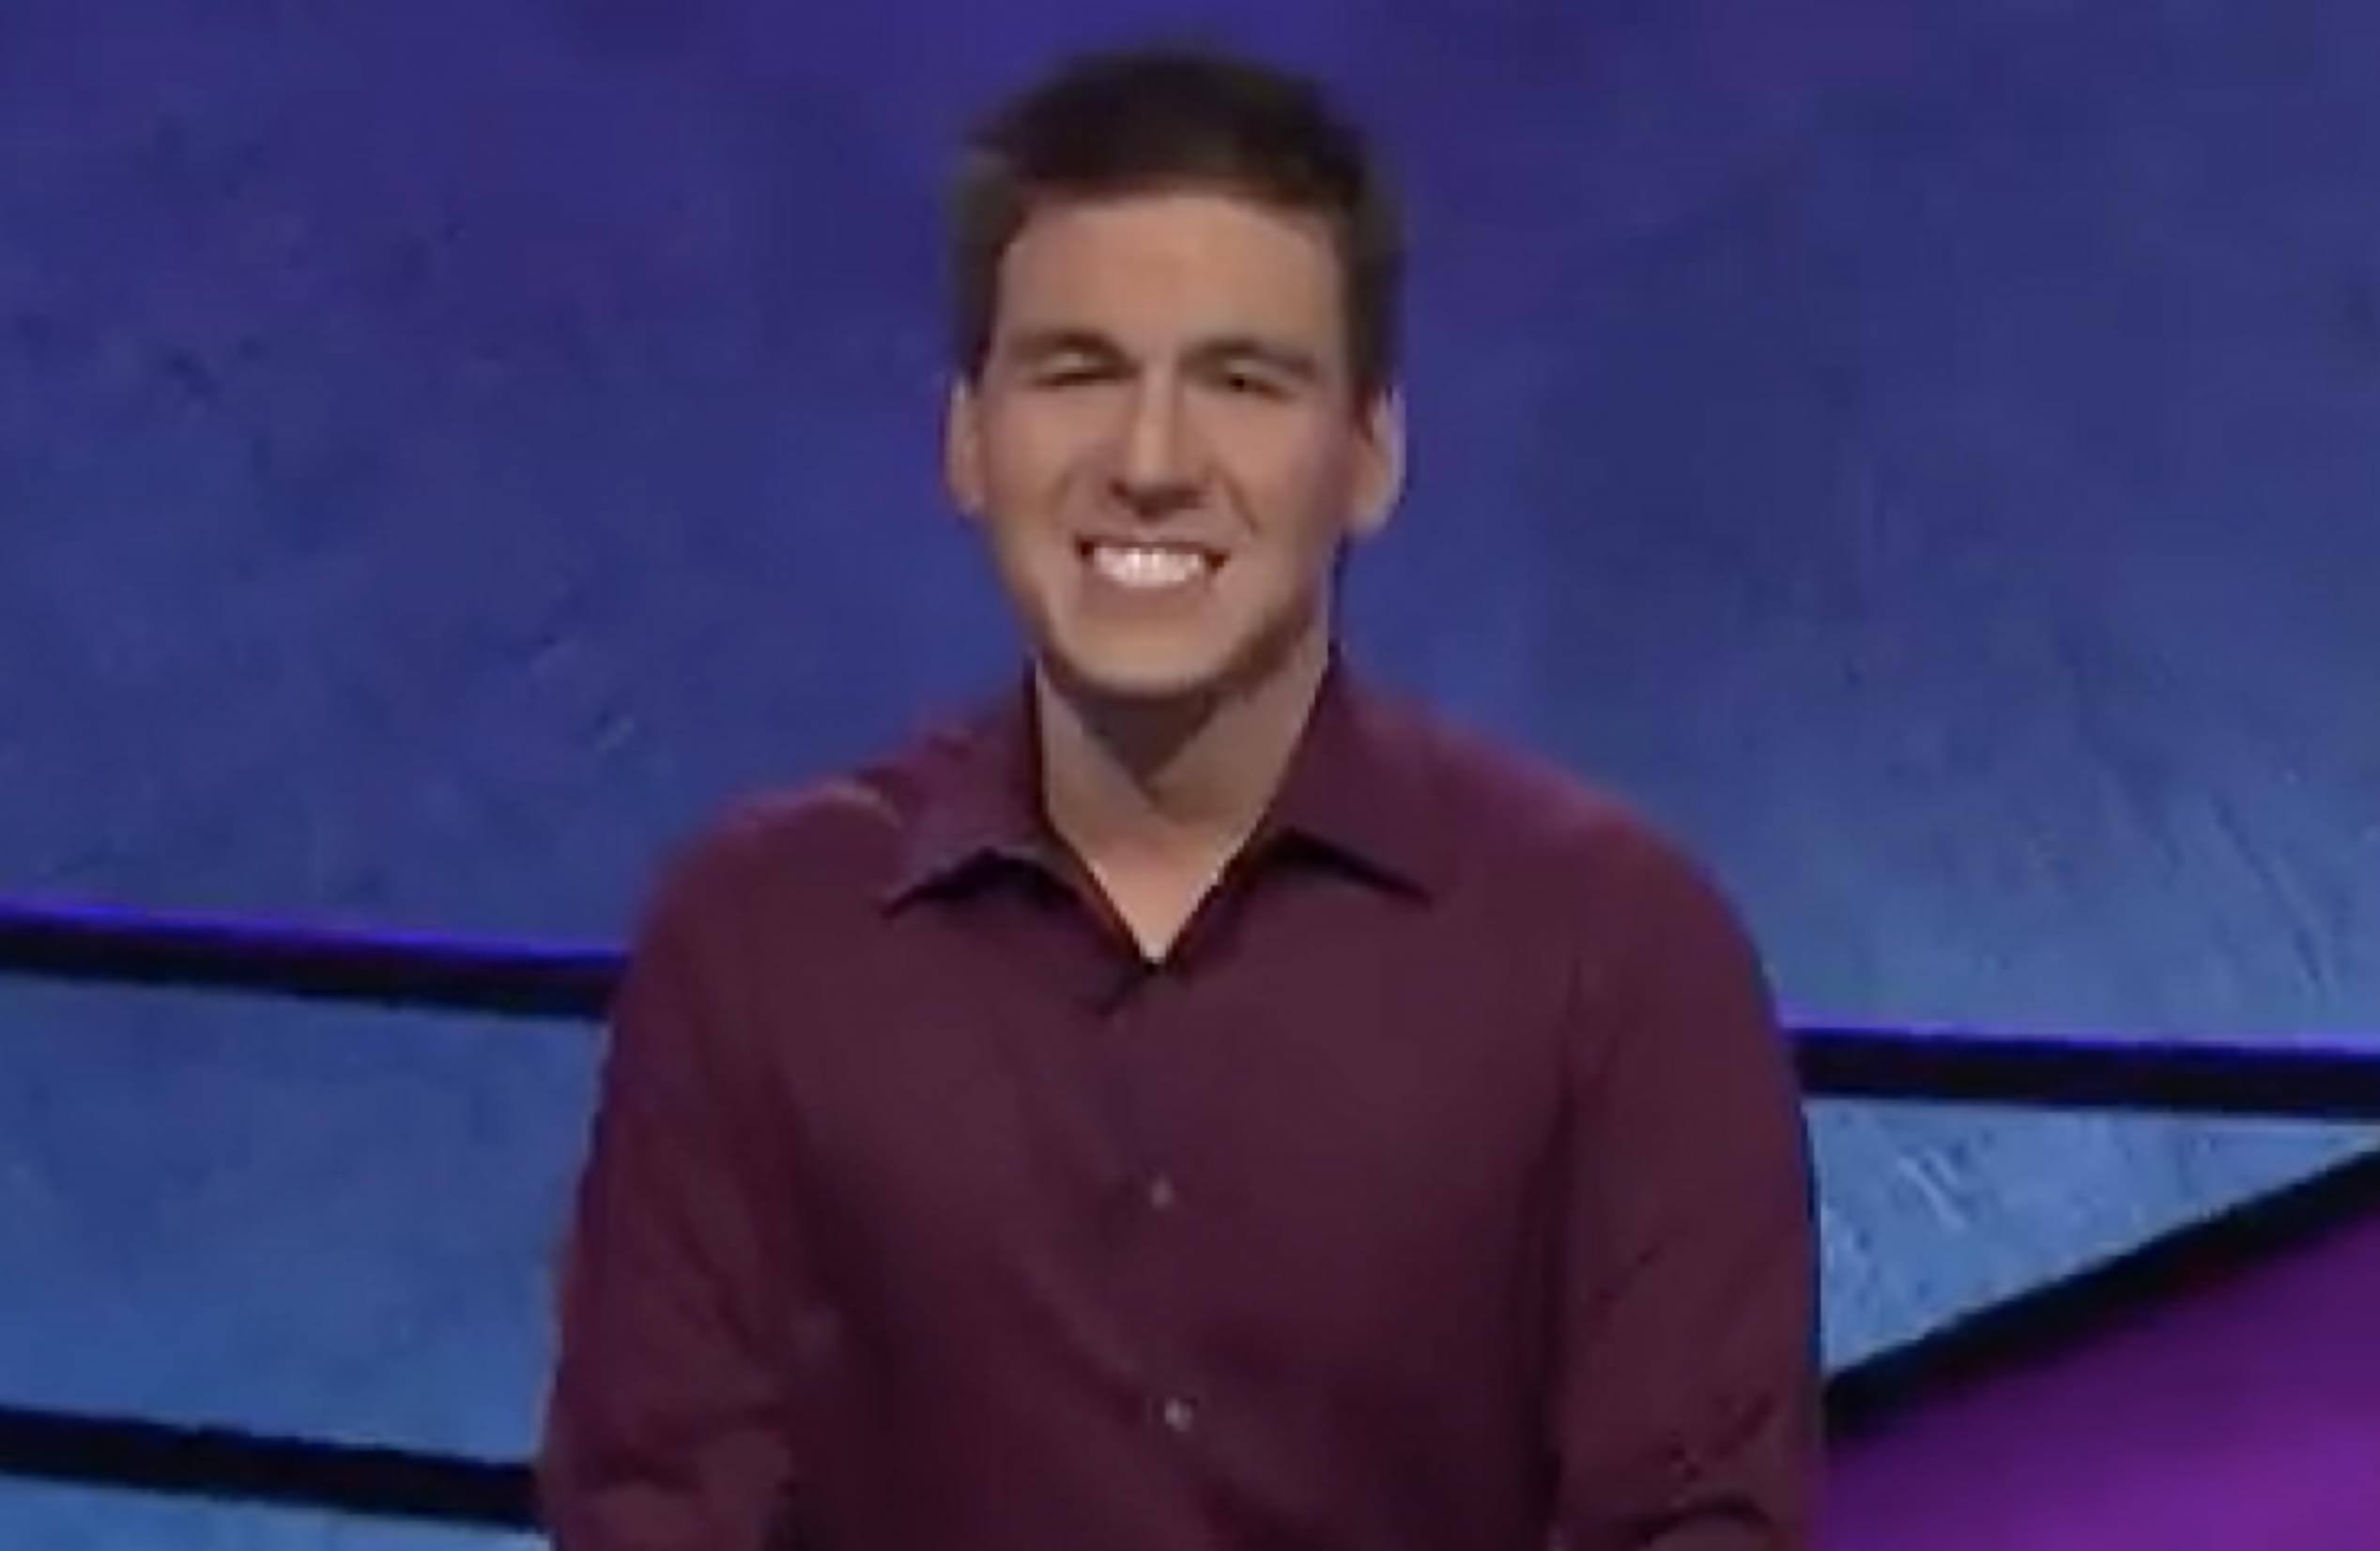 Naperville native breaks own Jeopardy record